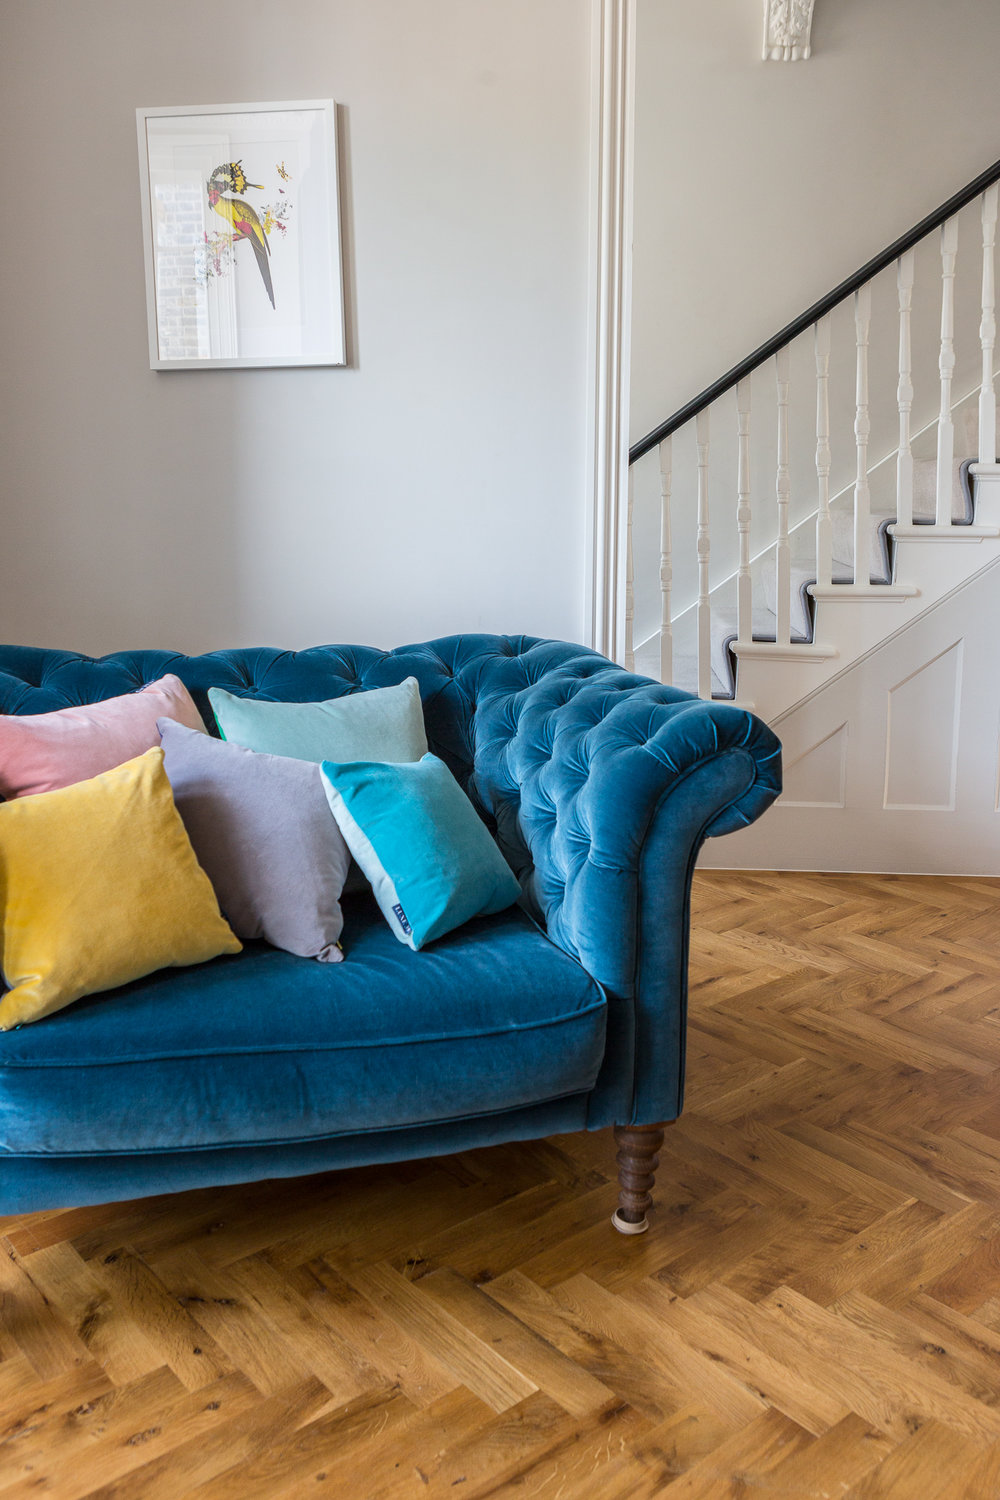 Teal chair with cushions copy.jpg